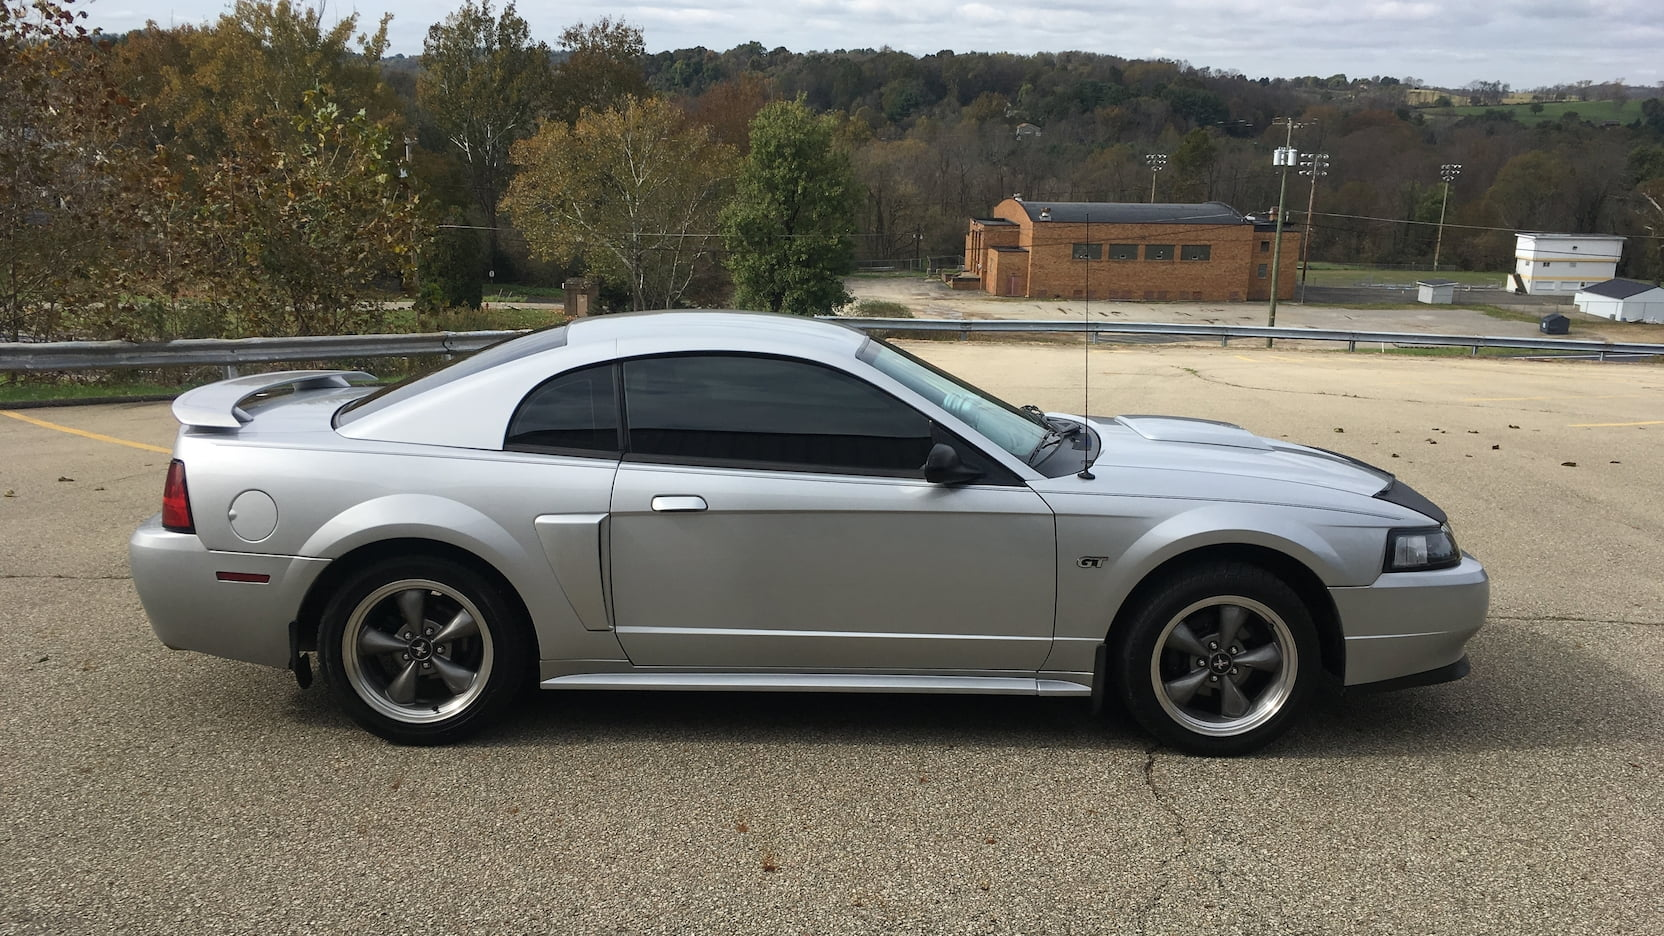 2003 Mustang Color Information